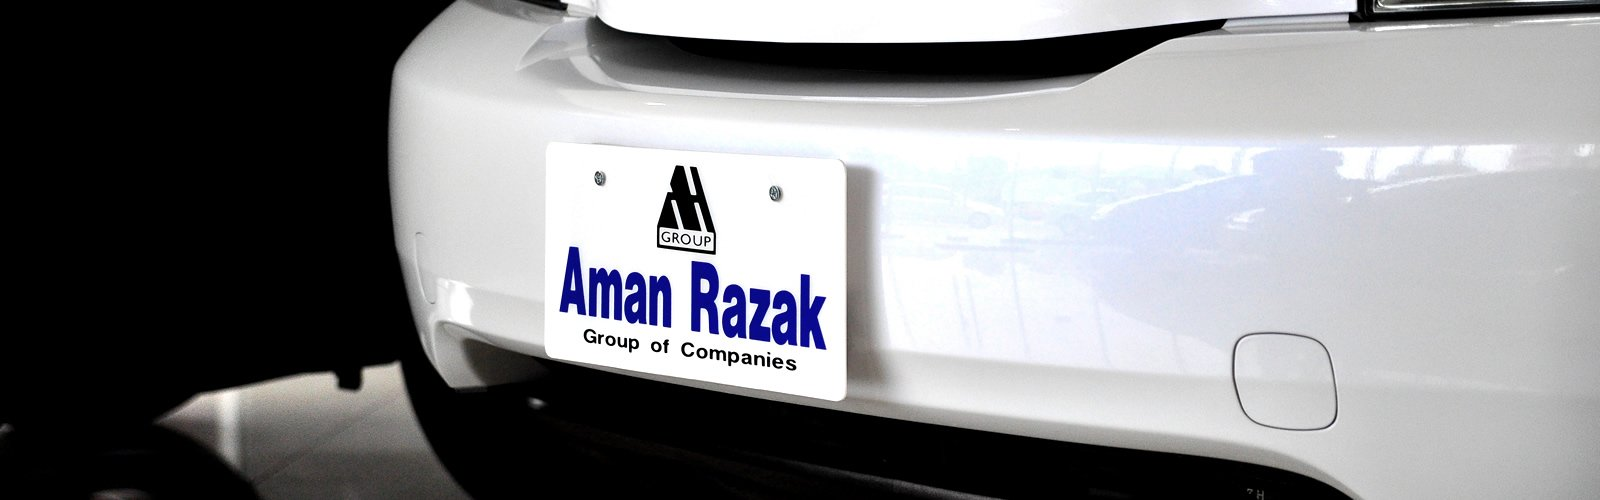 Aman Razak Management Team